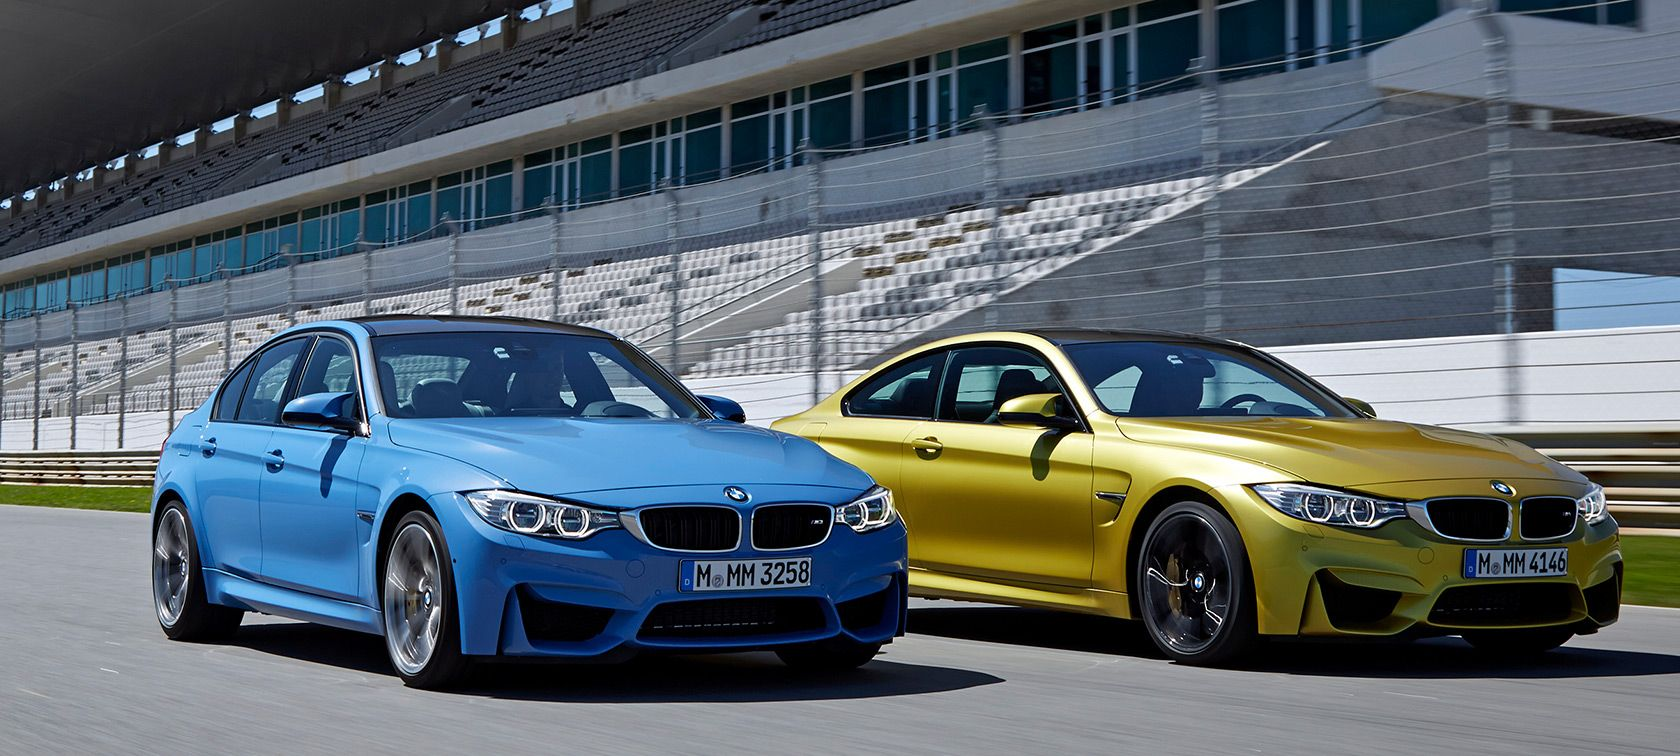 The Suspension Of Bmw M3 And M4